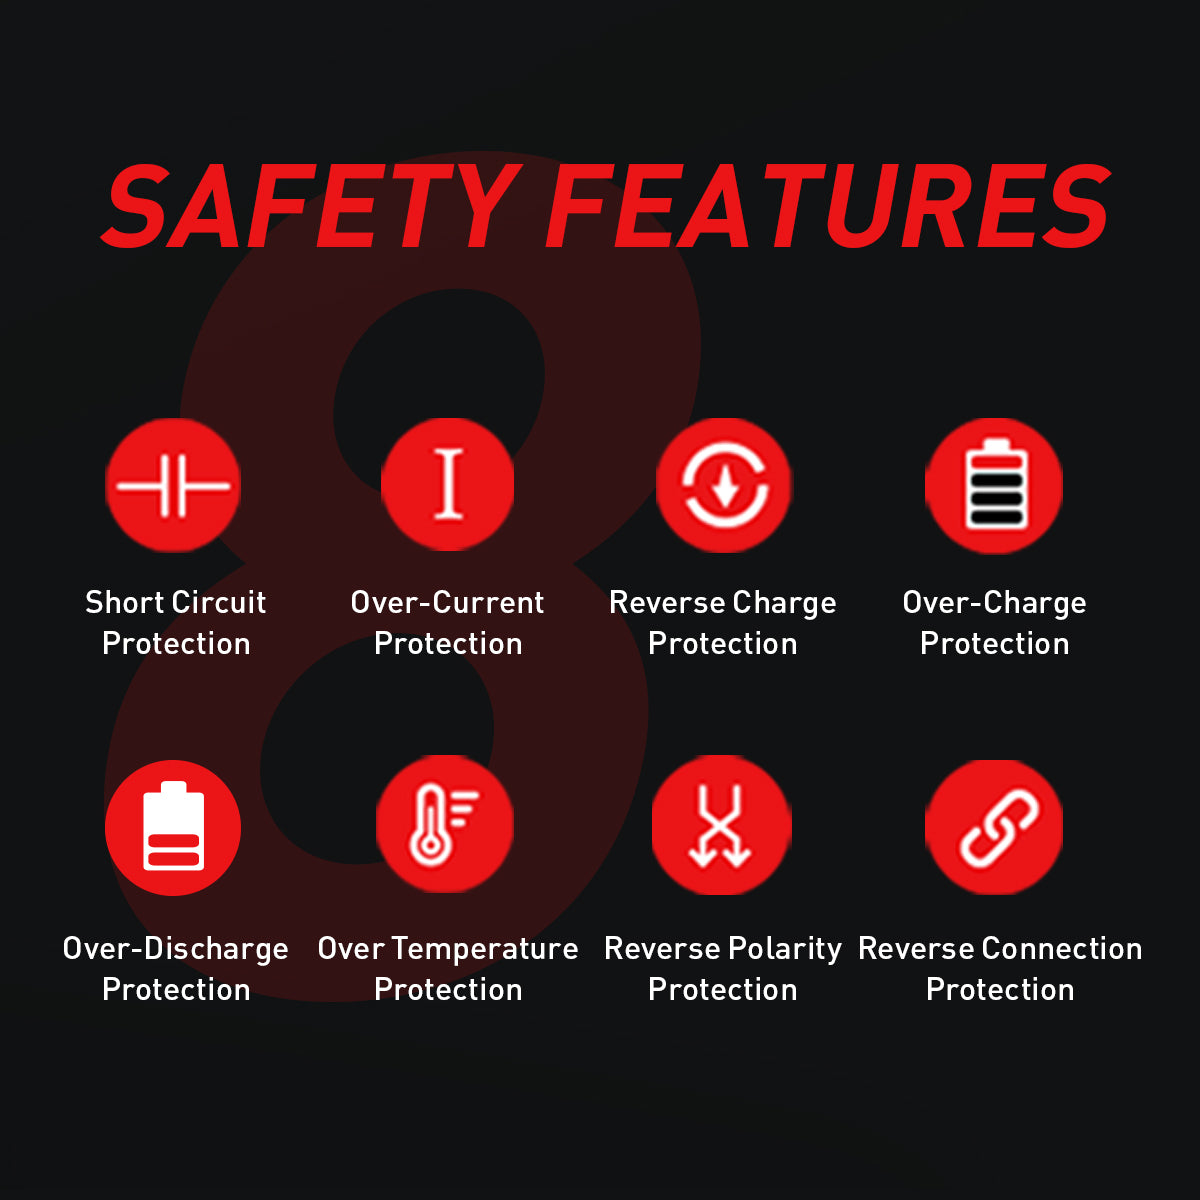 safety features short circuit protection over-current reverse charge temperature